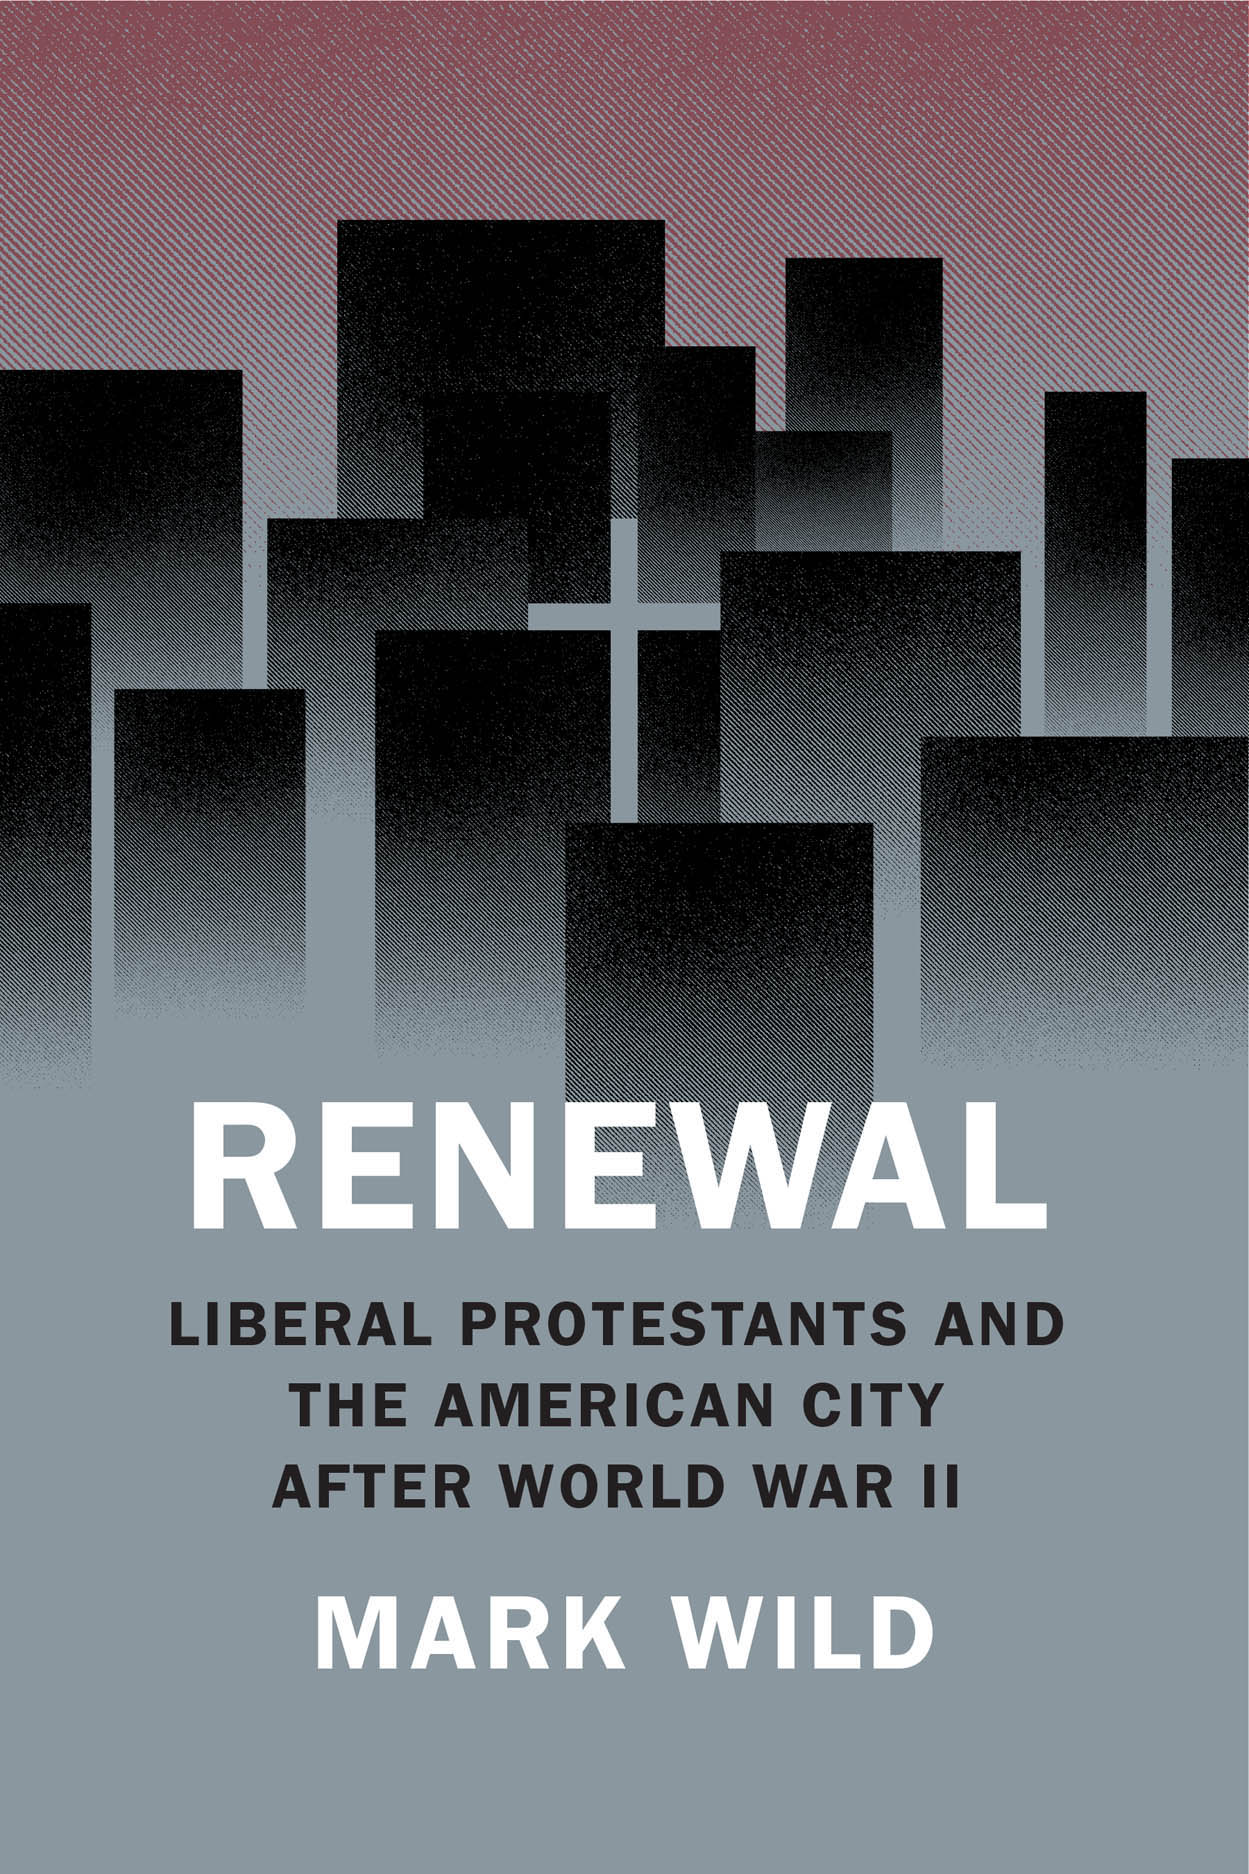 Renewal: Liberal Protestants and the American City after World War II